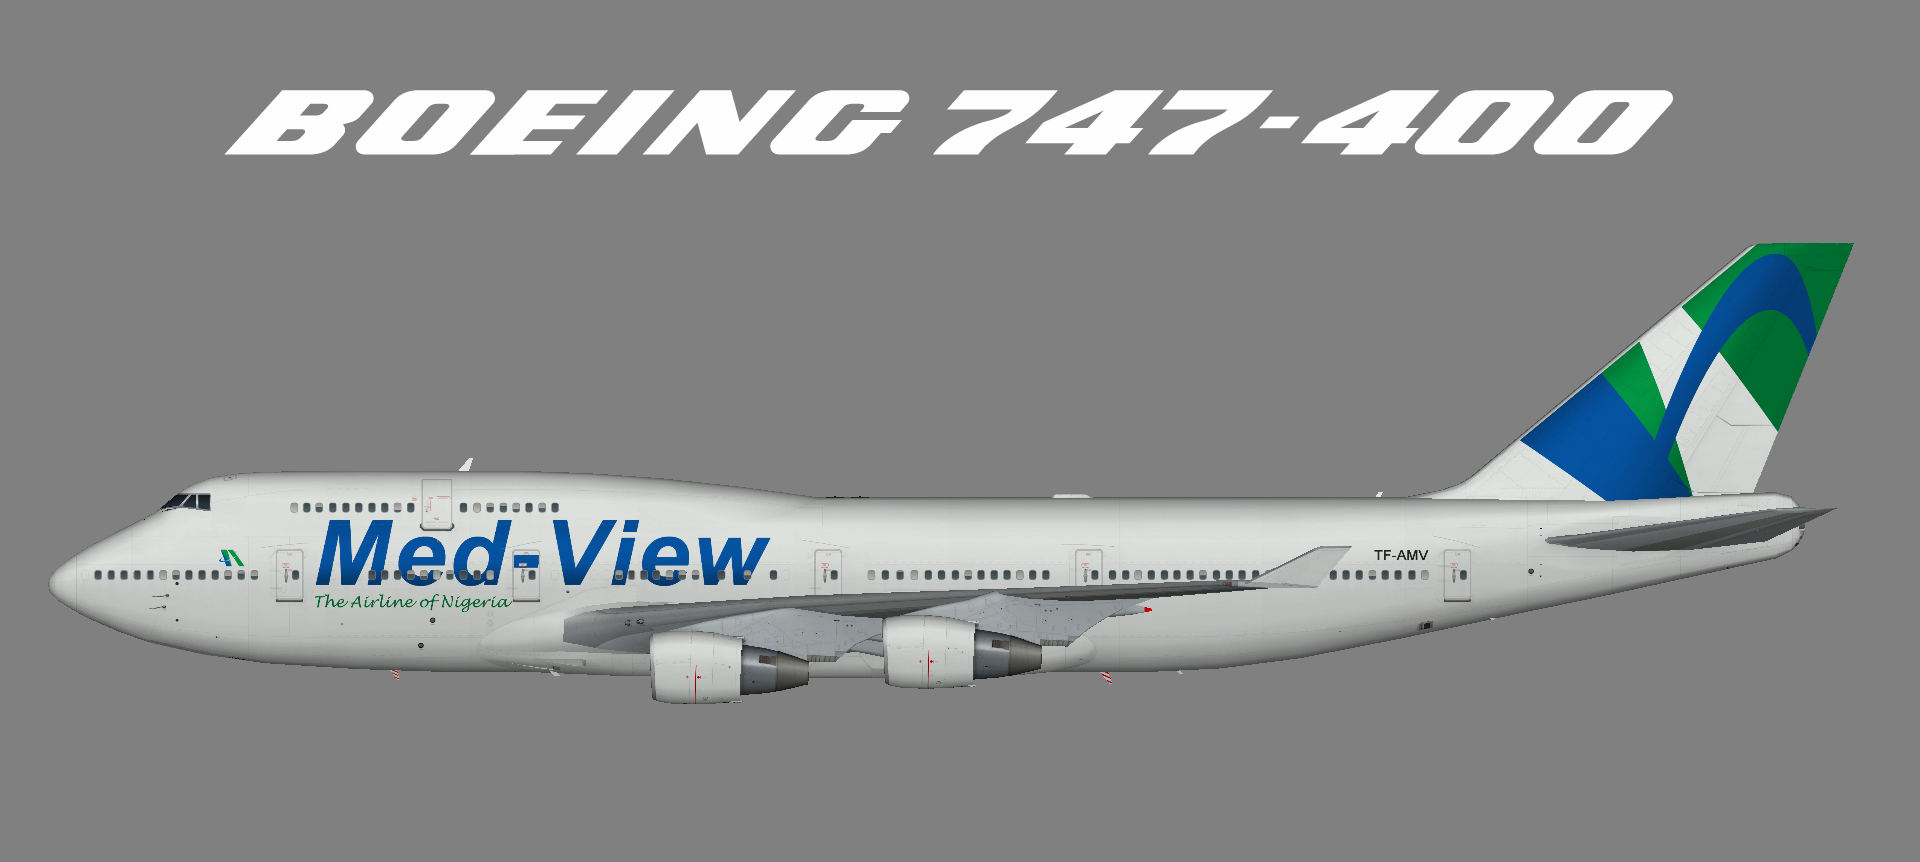 Med-View Airline 747-400